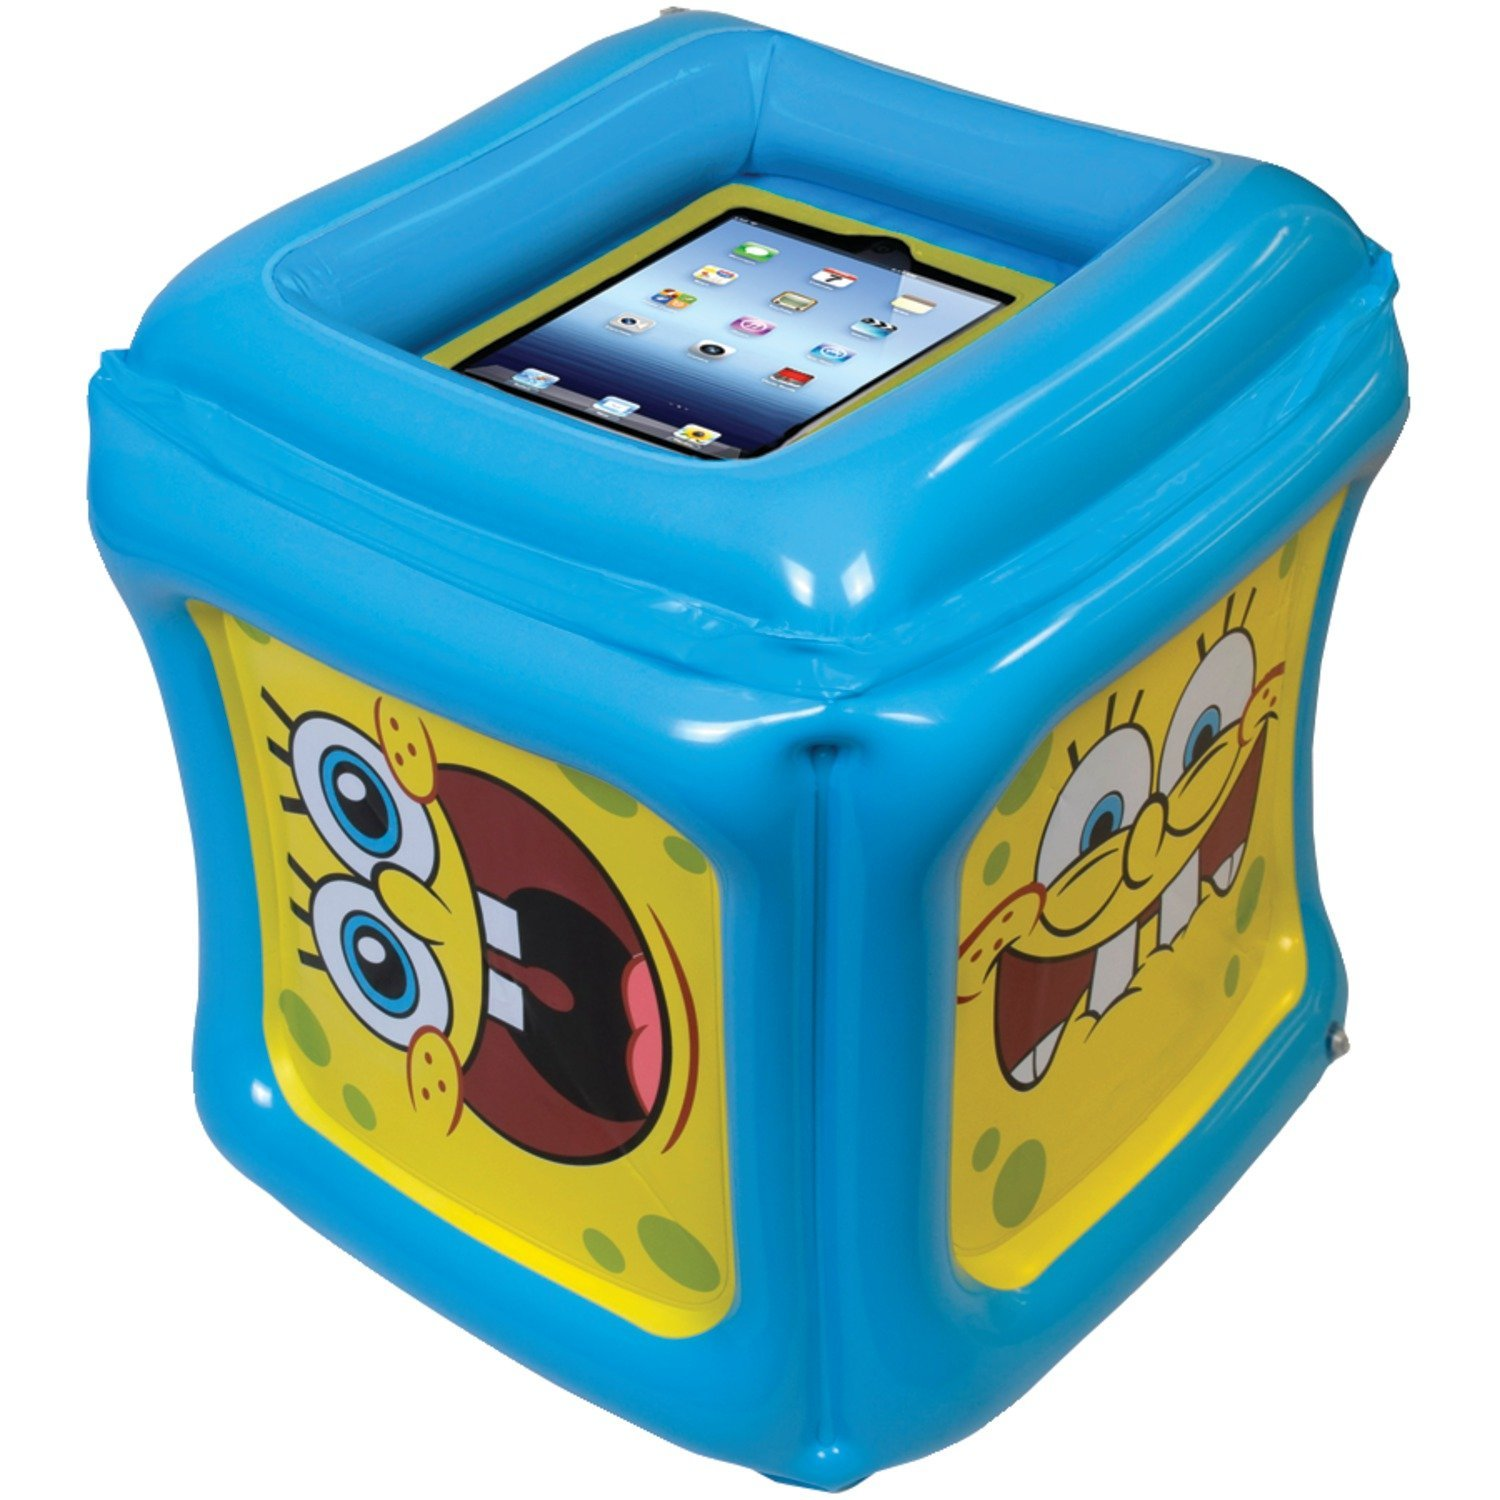 SpongeBob SquarePants Inflatable Play Cube for iPad/iPad 2/The new iPad with App Included